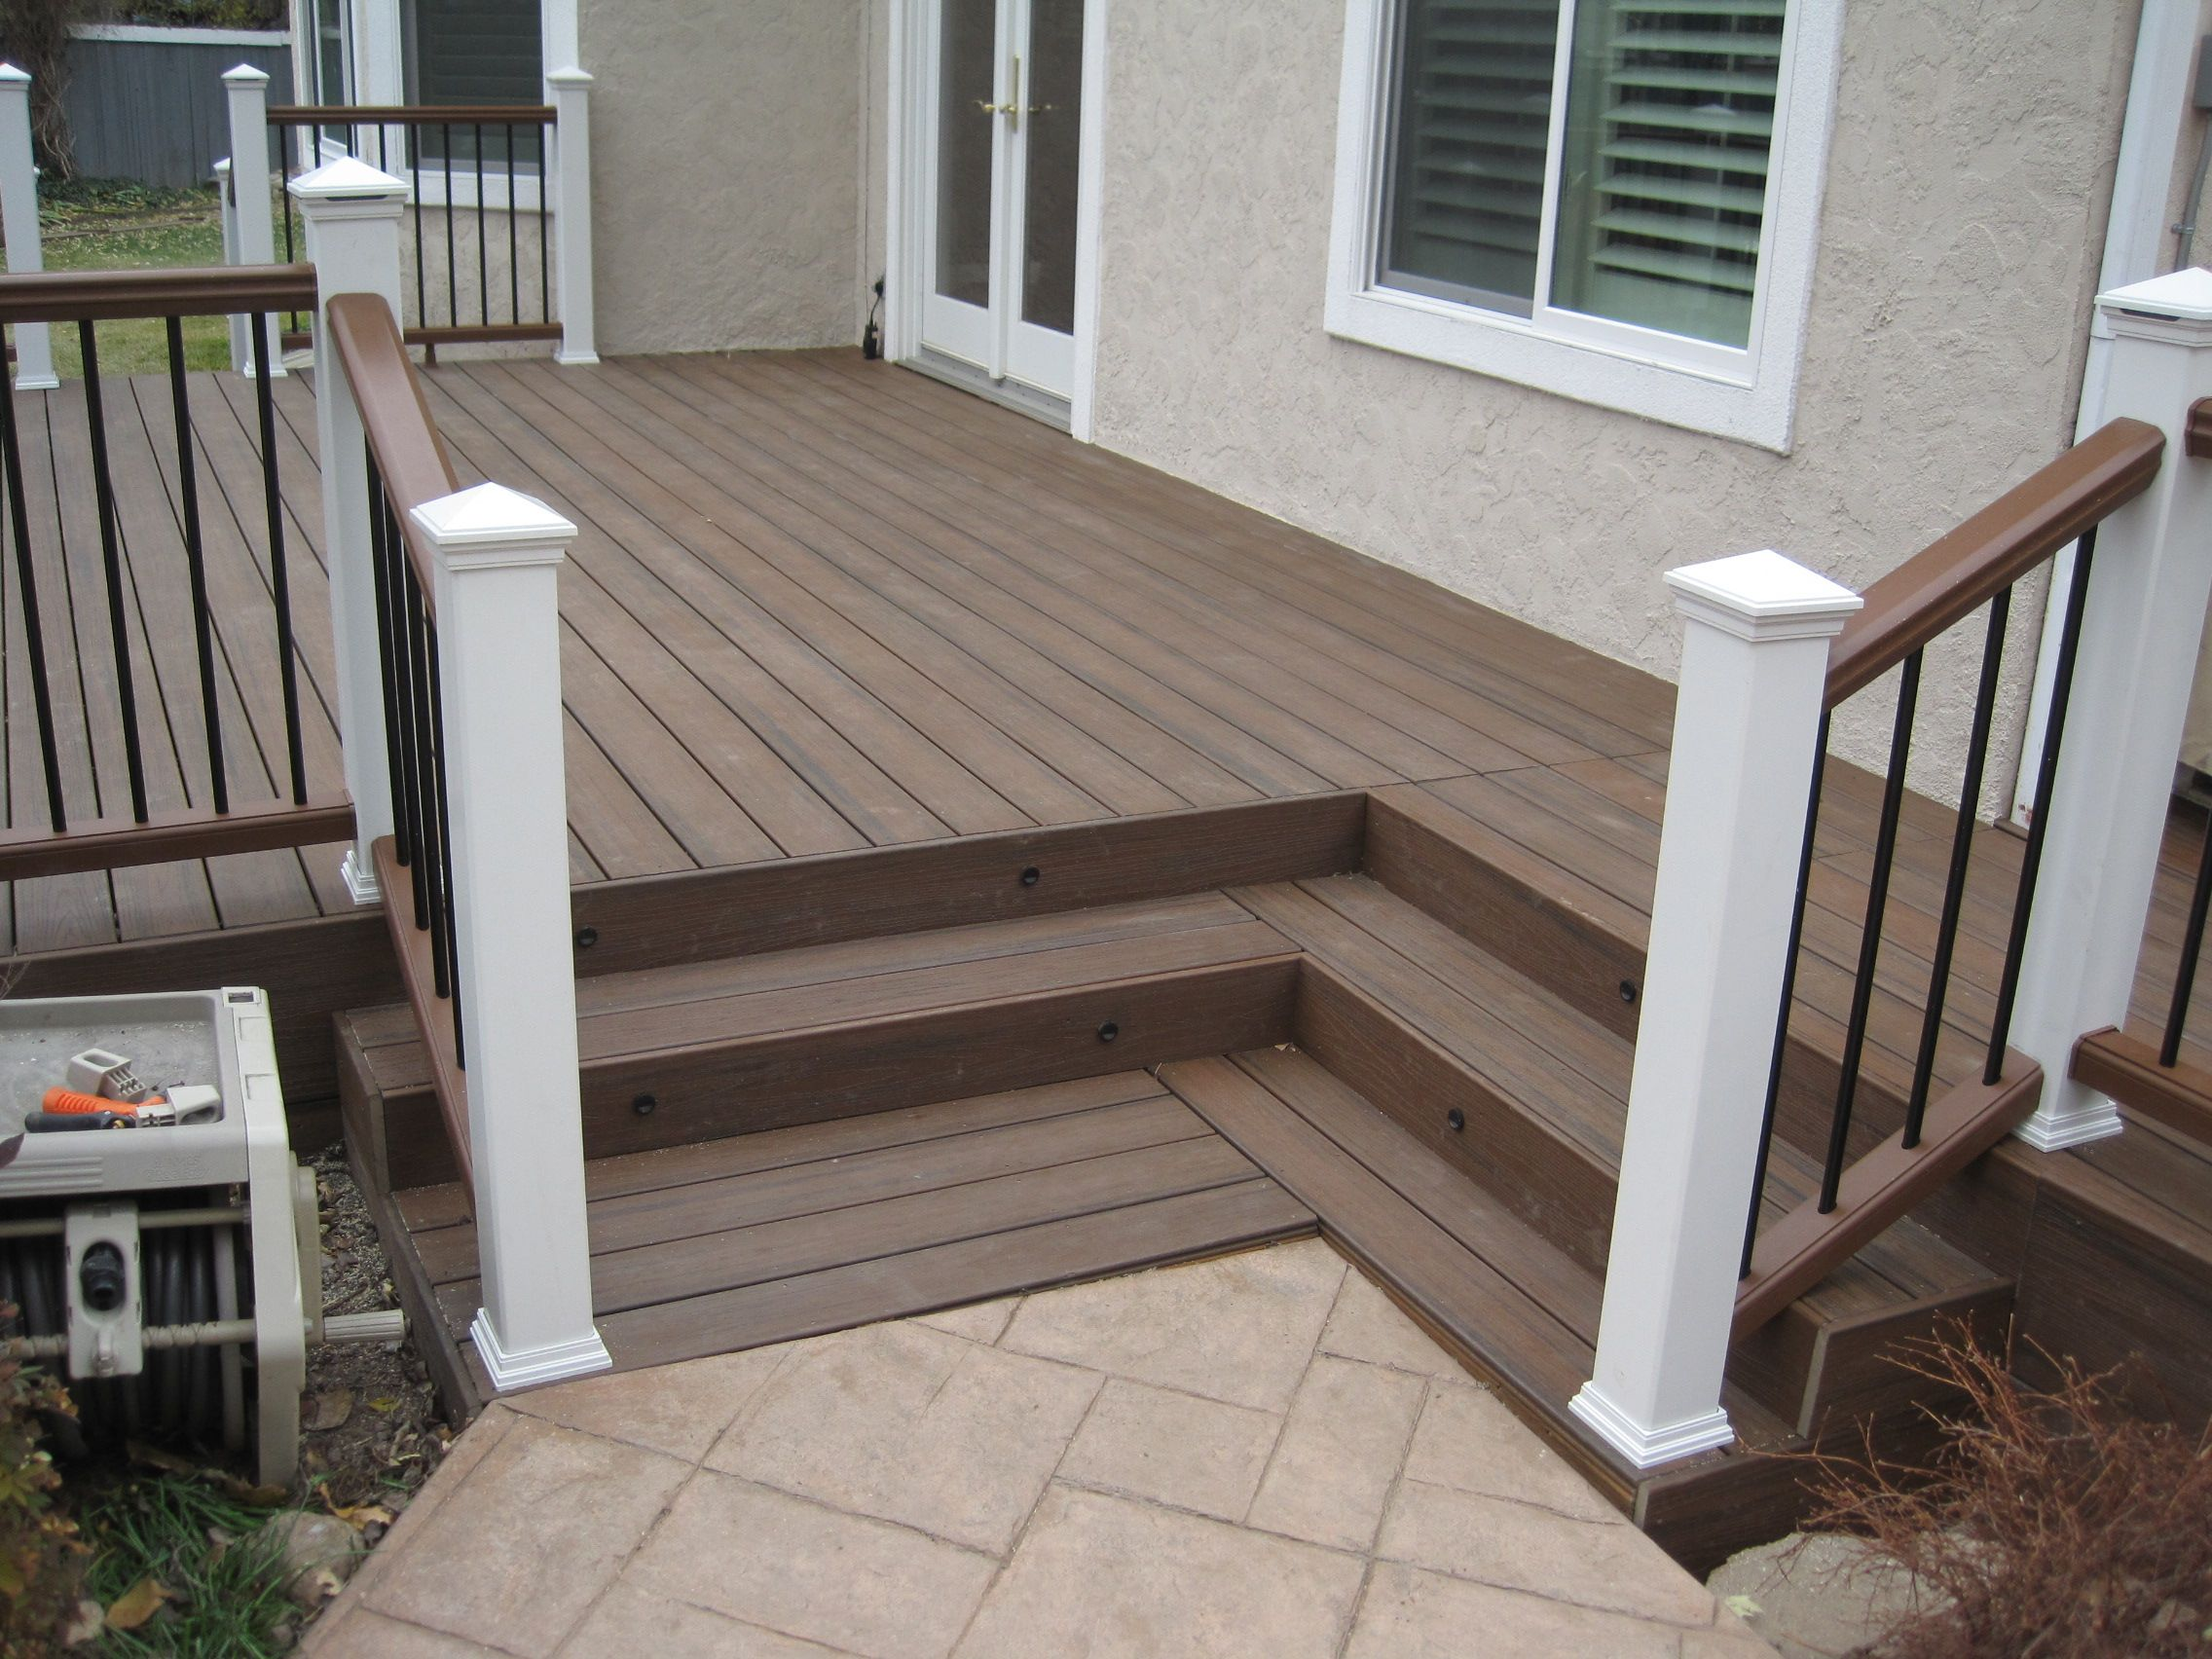 Standard trex decking cost with hight quality of wood for Best composite decking material